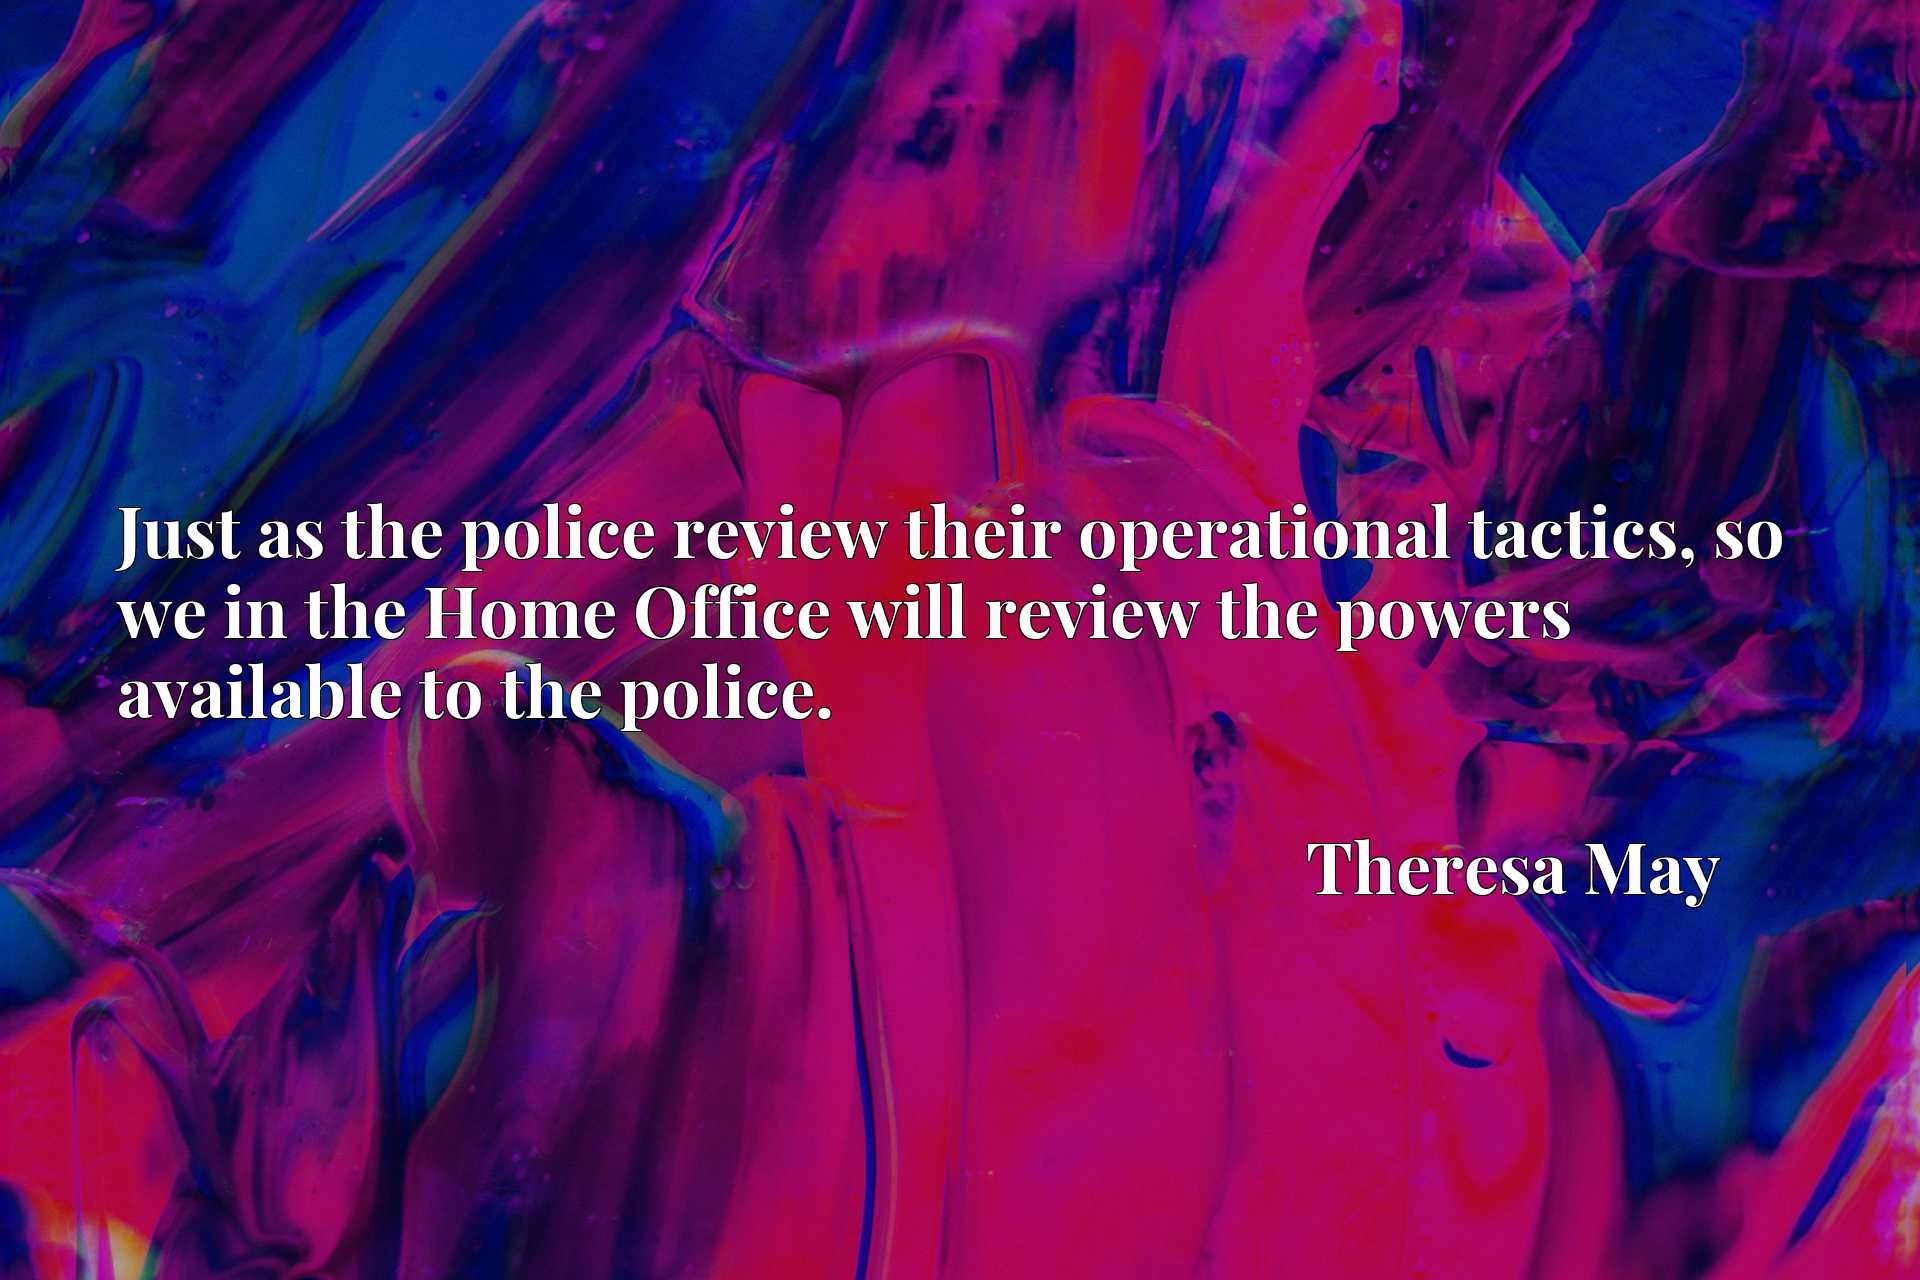 Just as the police review their operational tactics, so we in the Home Office will review the powers available to the police.